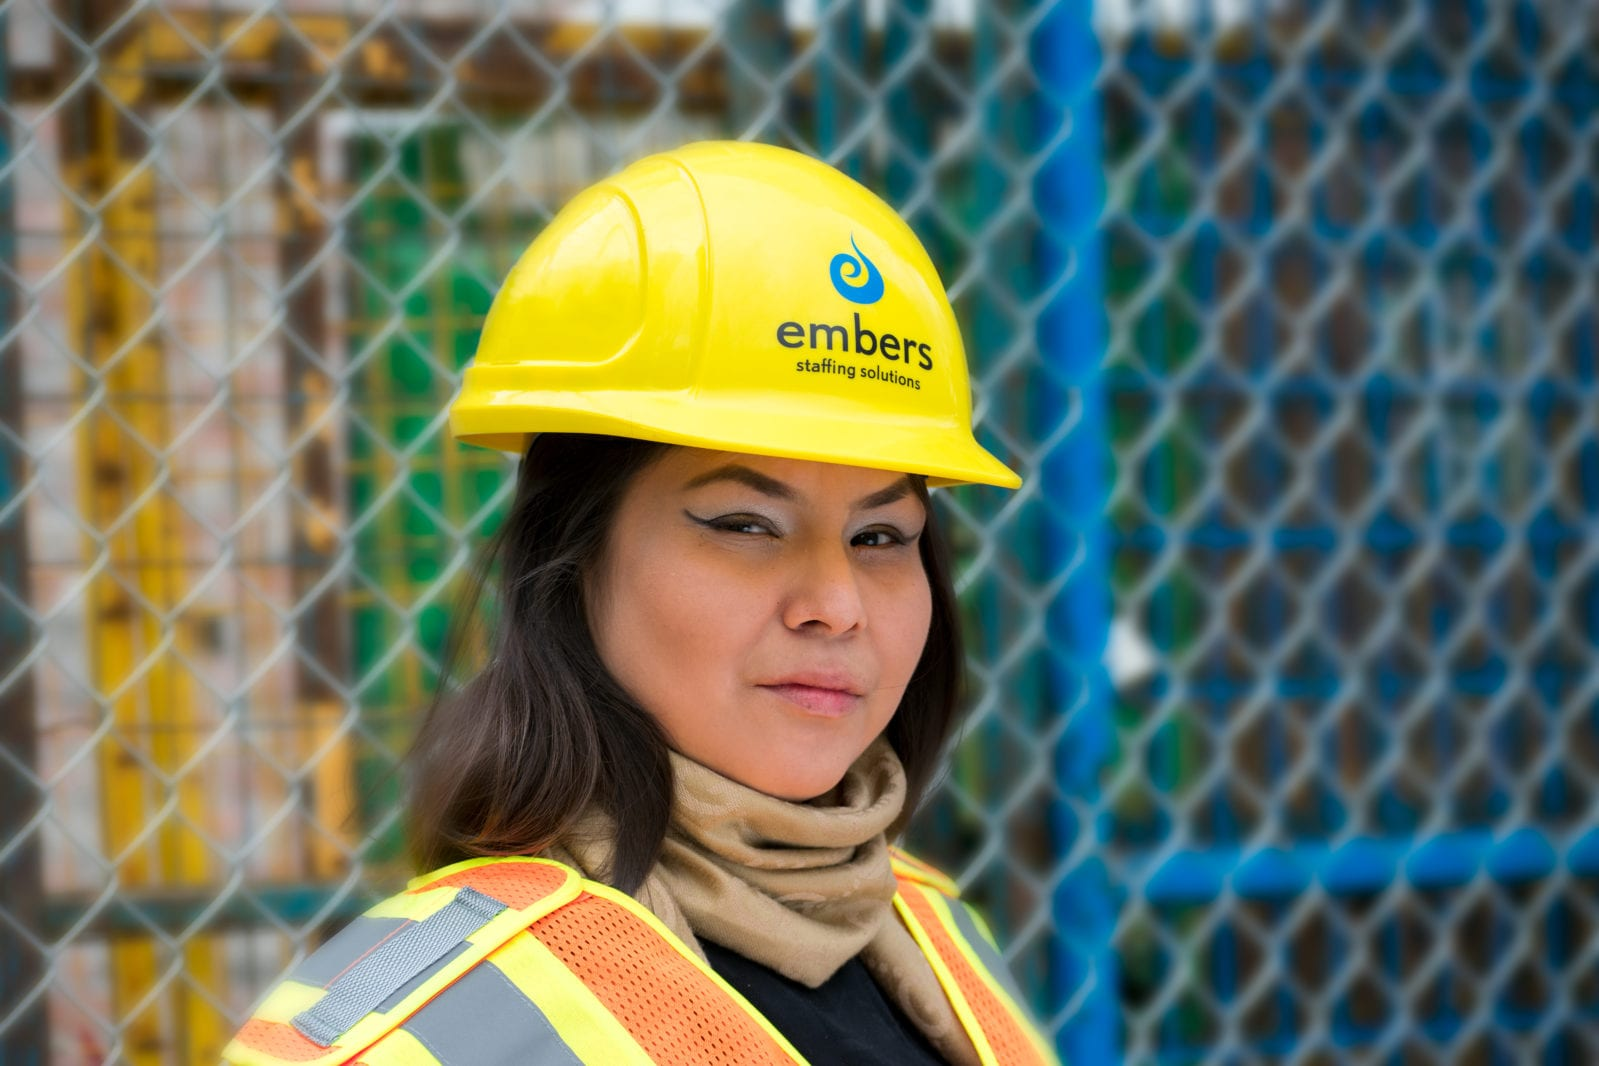 embers staffing solutions